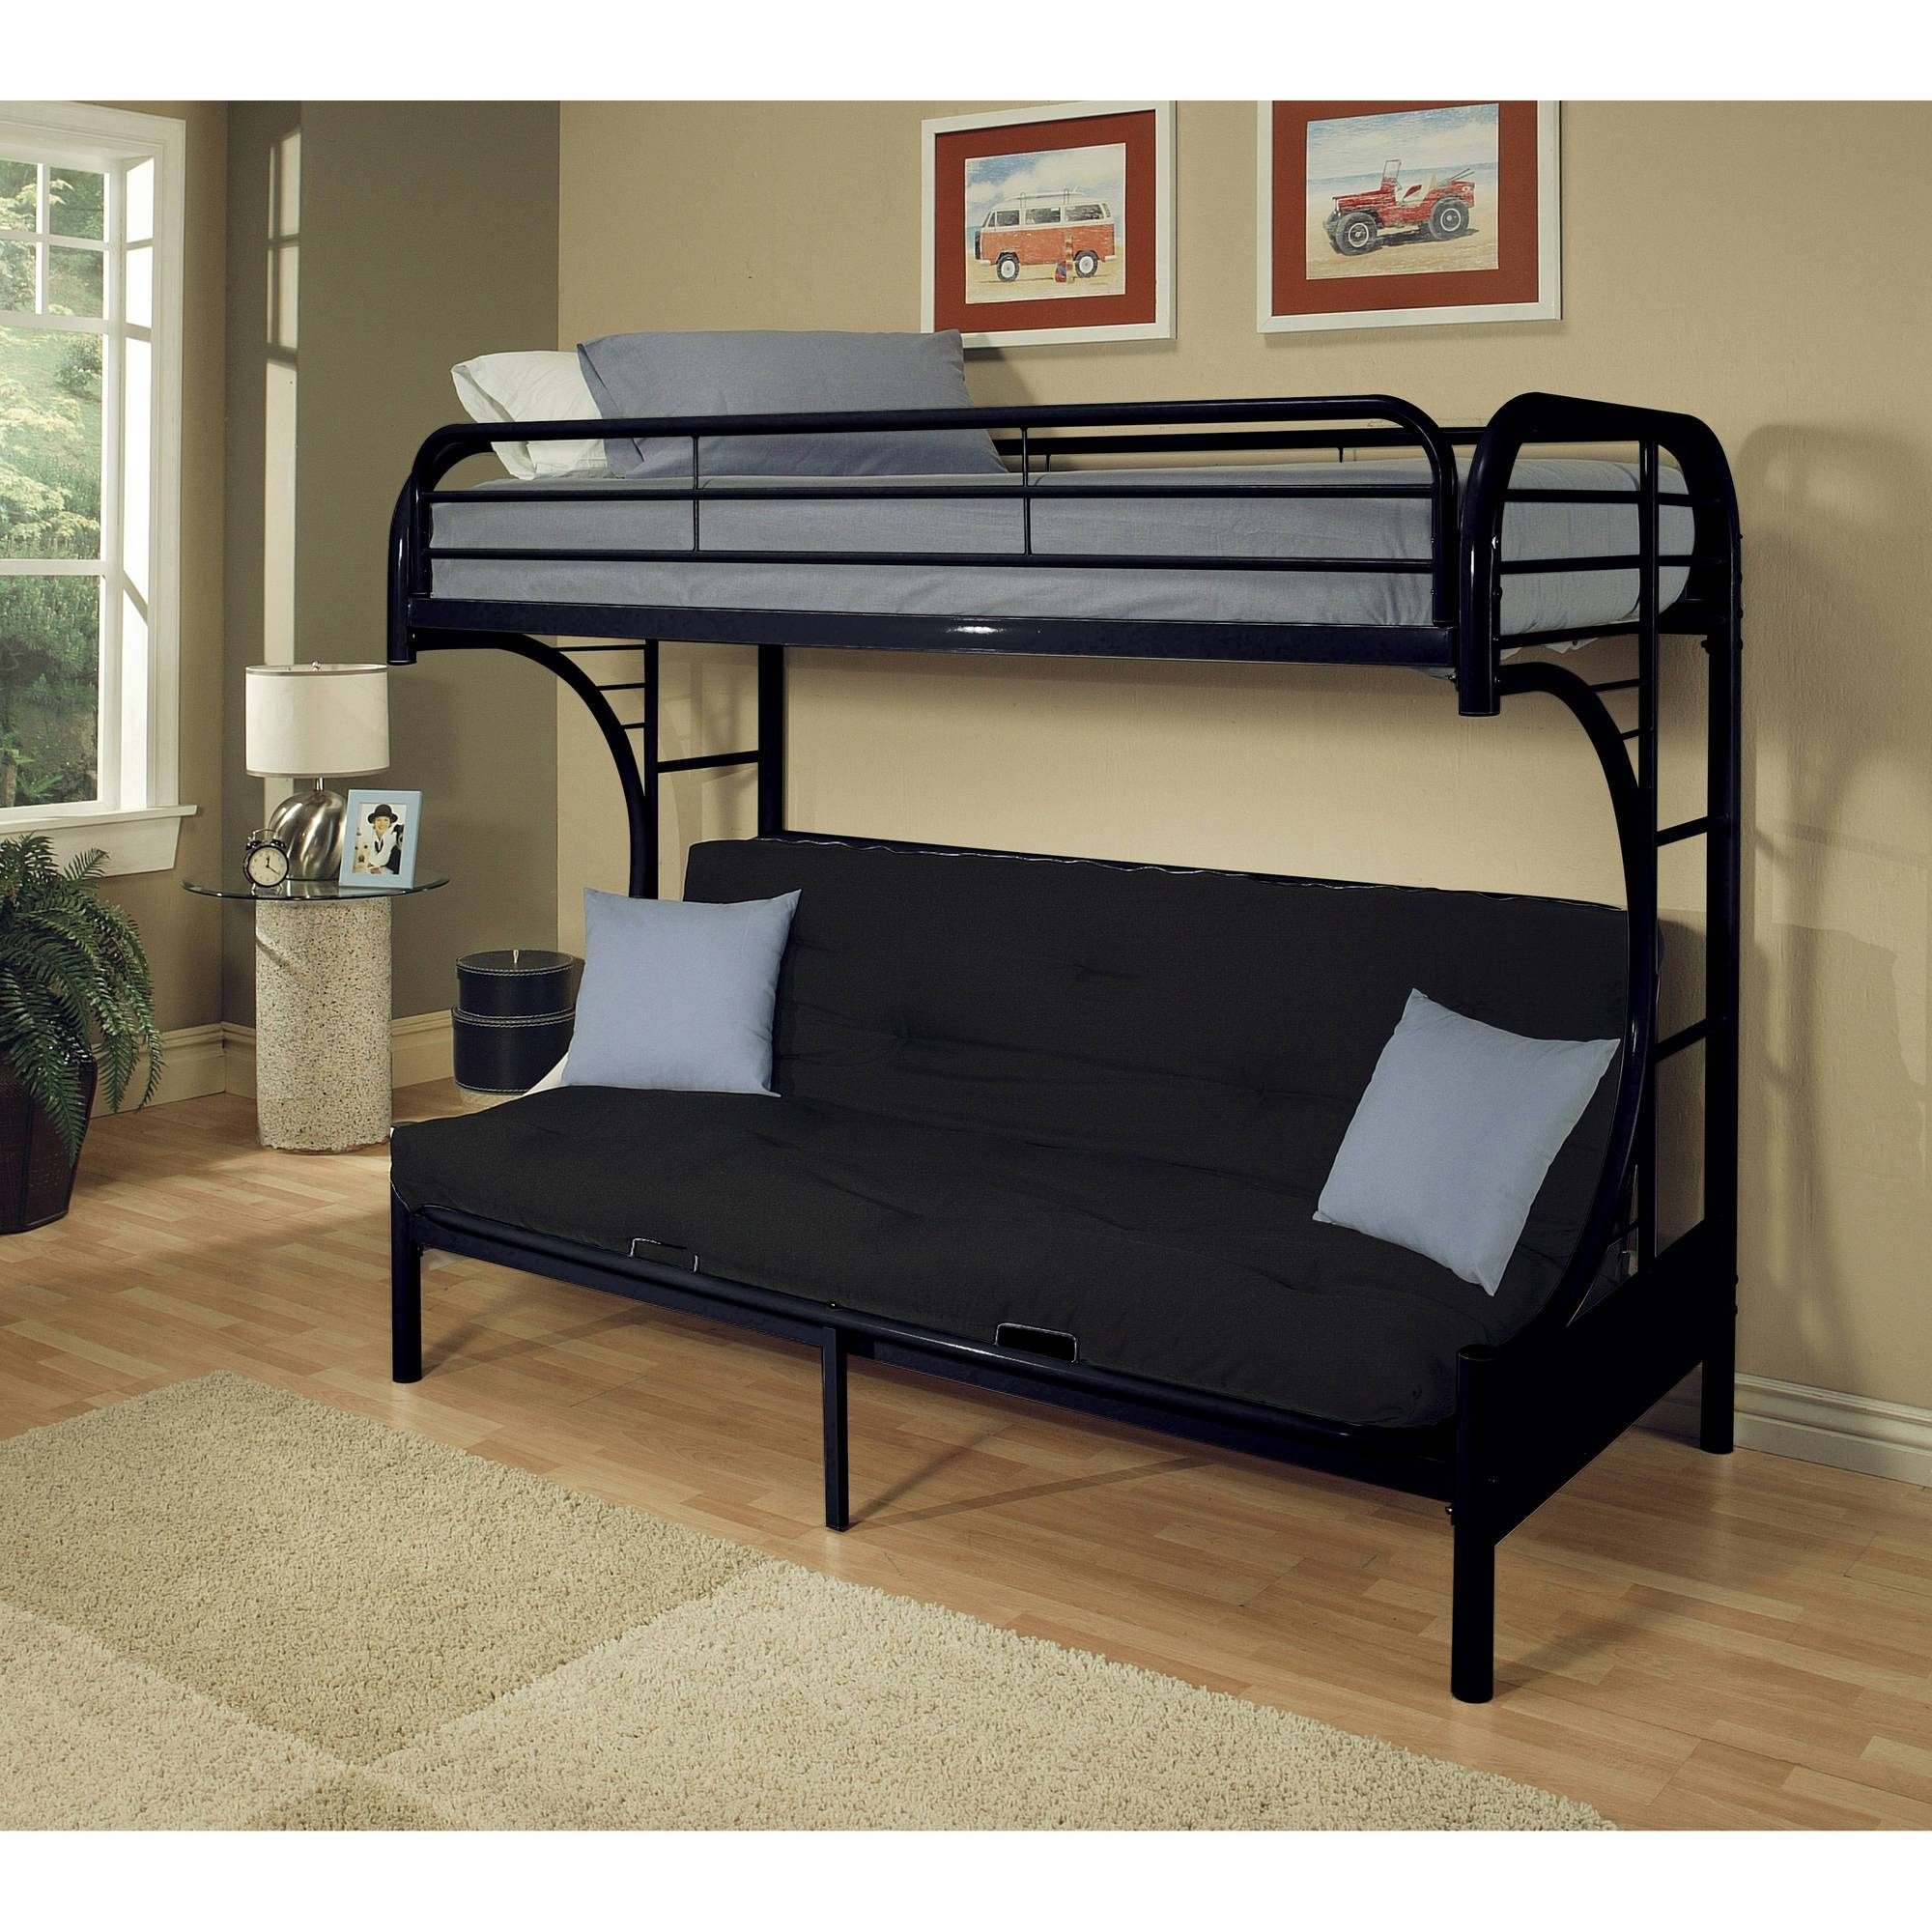 Furniture: Wonderful Walmart Futon Beds With A Simple Folding with regard to Kmart Futon Beds (Image 9 of 15)